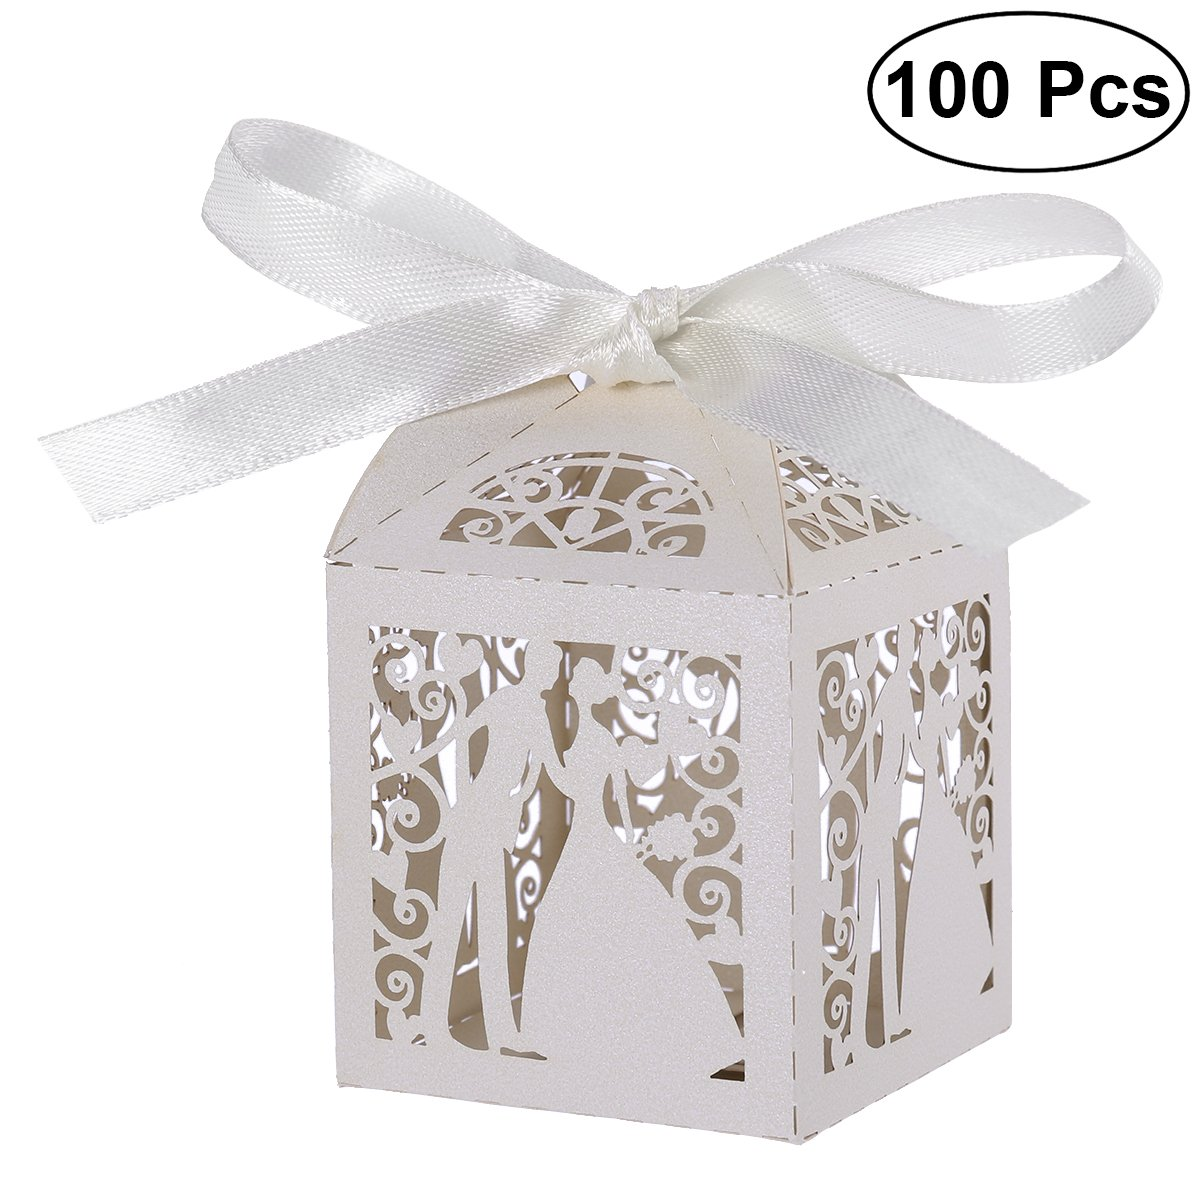 Amazon.com : Wrapped Wedding Buttermints 108 Pc Bag (Thanks for ...